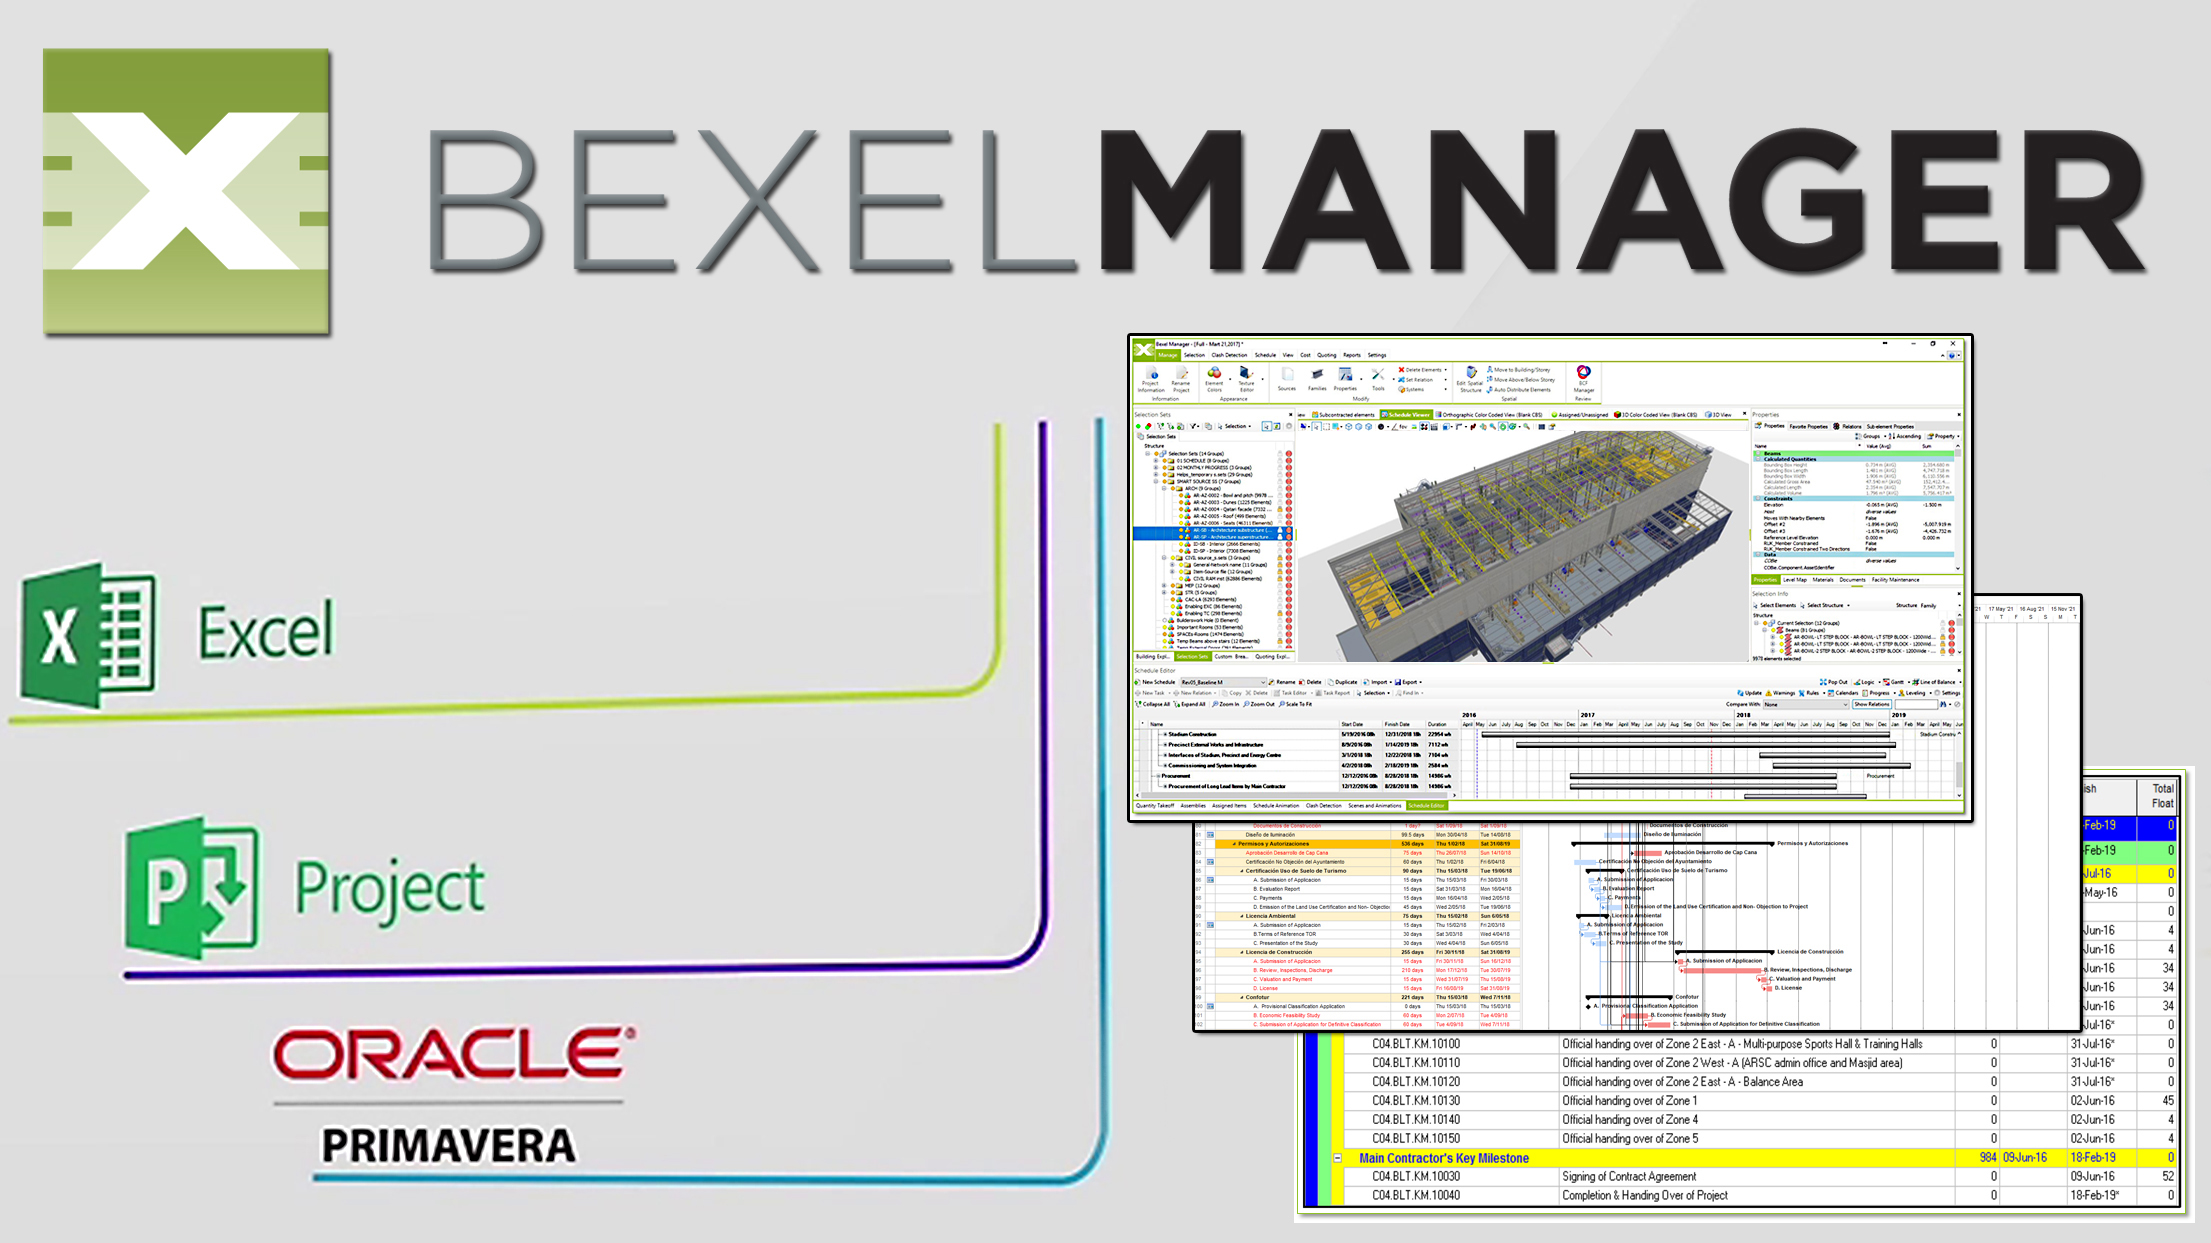 Import/export multiple schedules from various sources (e.g. Oracle Primavera®, Microsoft Project®) to Bexel Manager Software.